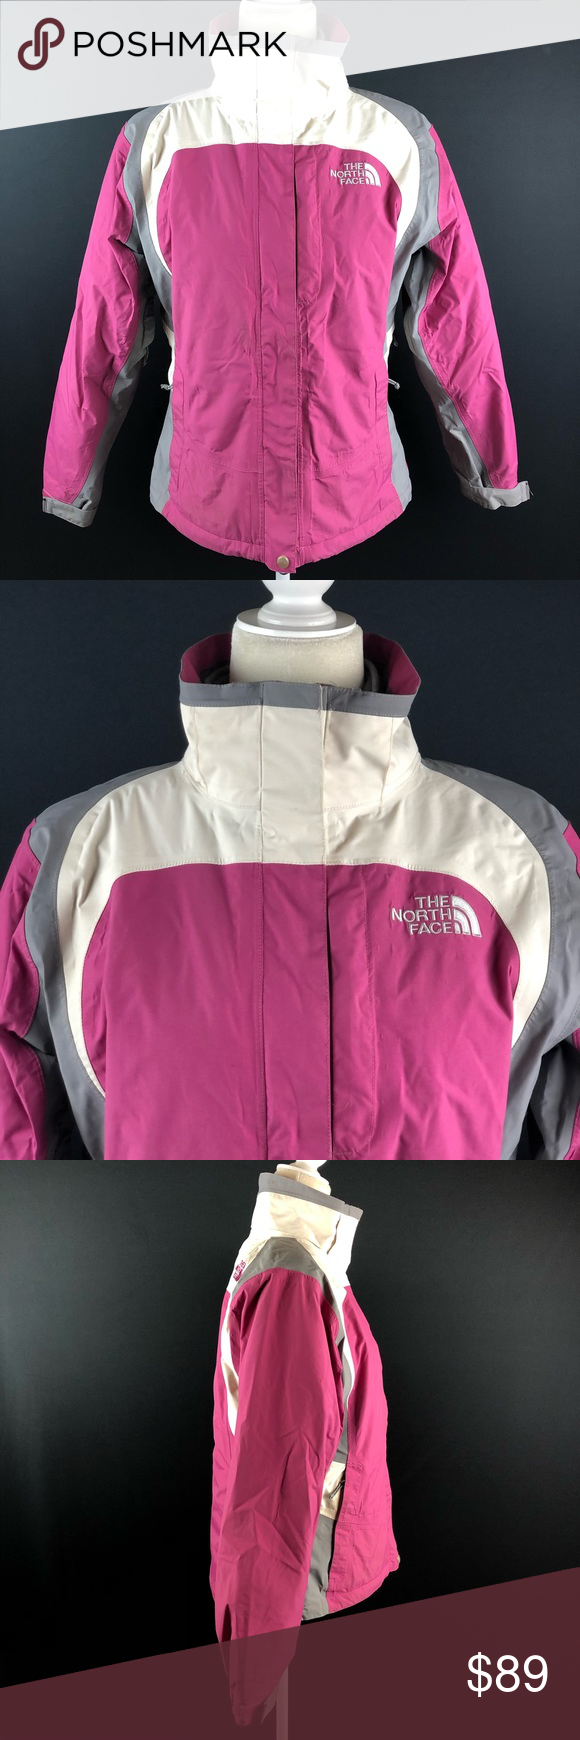 The North Face Hyvent 3 In 1 Snowboard Ski Coat North Face Hyvent Ski Coat The North Face [ 1740 x 580 Pixel ]